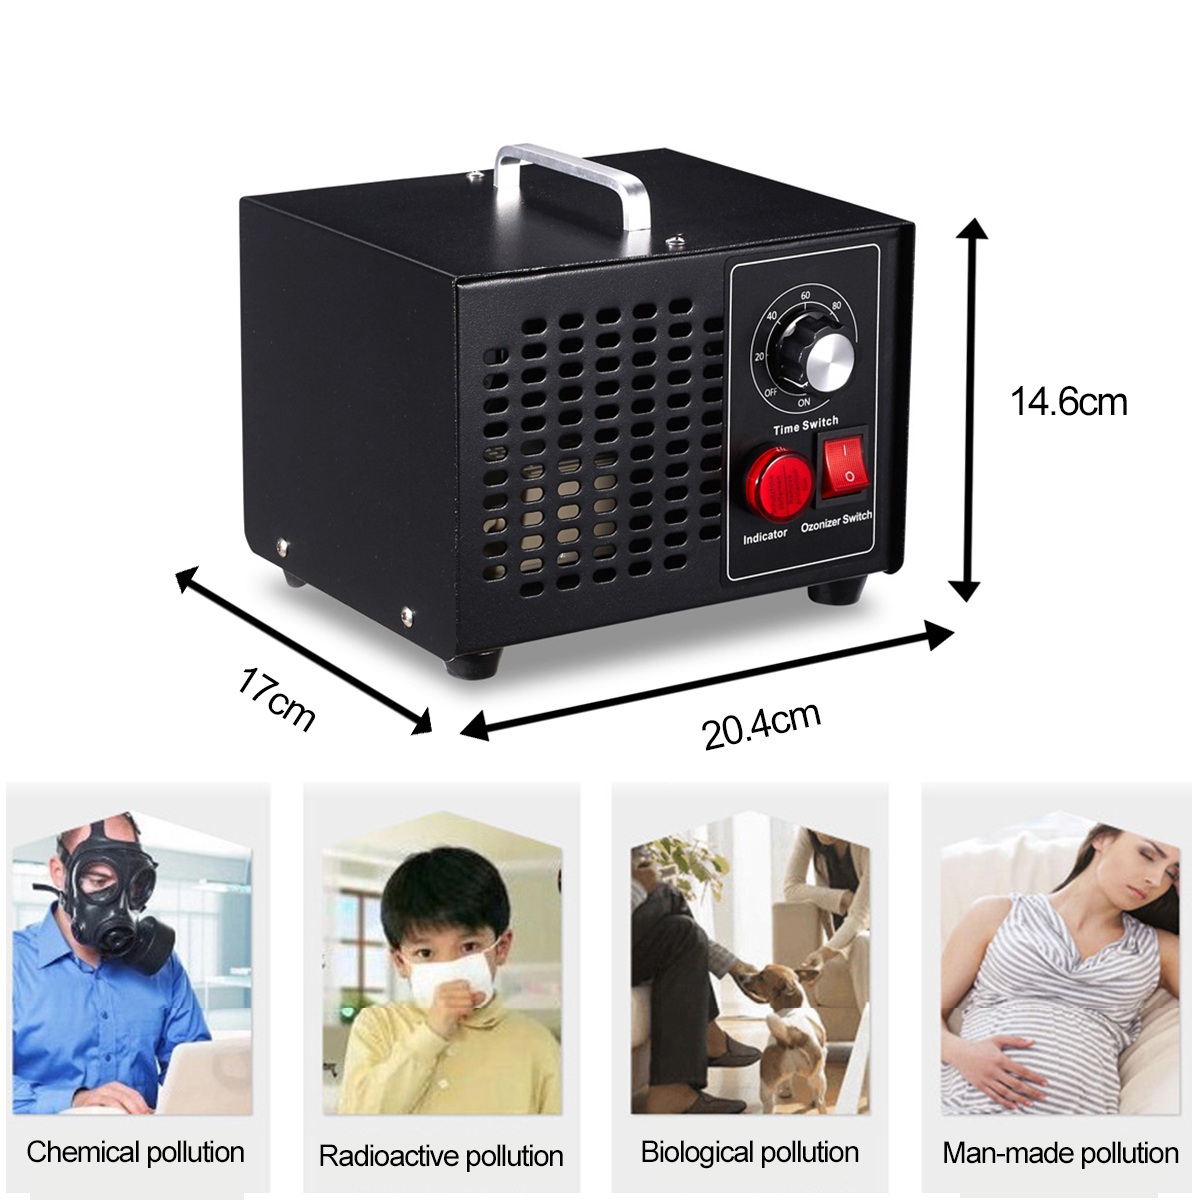 3.5g Commercial Ozone Generator Pro Air Purifier Ozonator Timer 220V for Home Disinfector